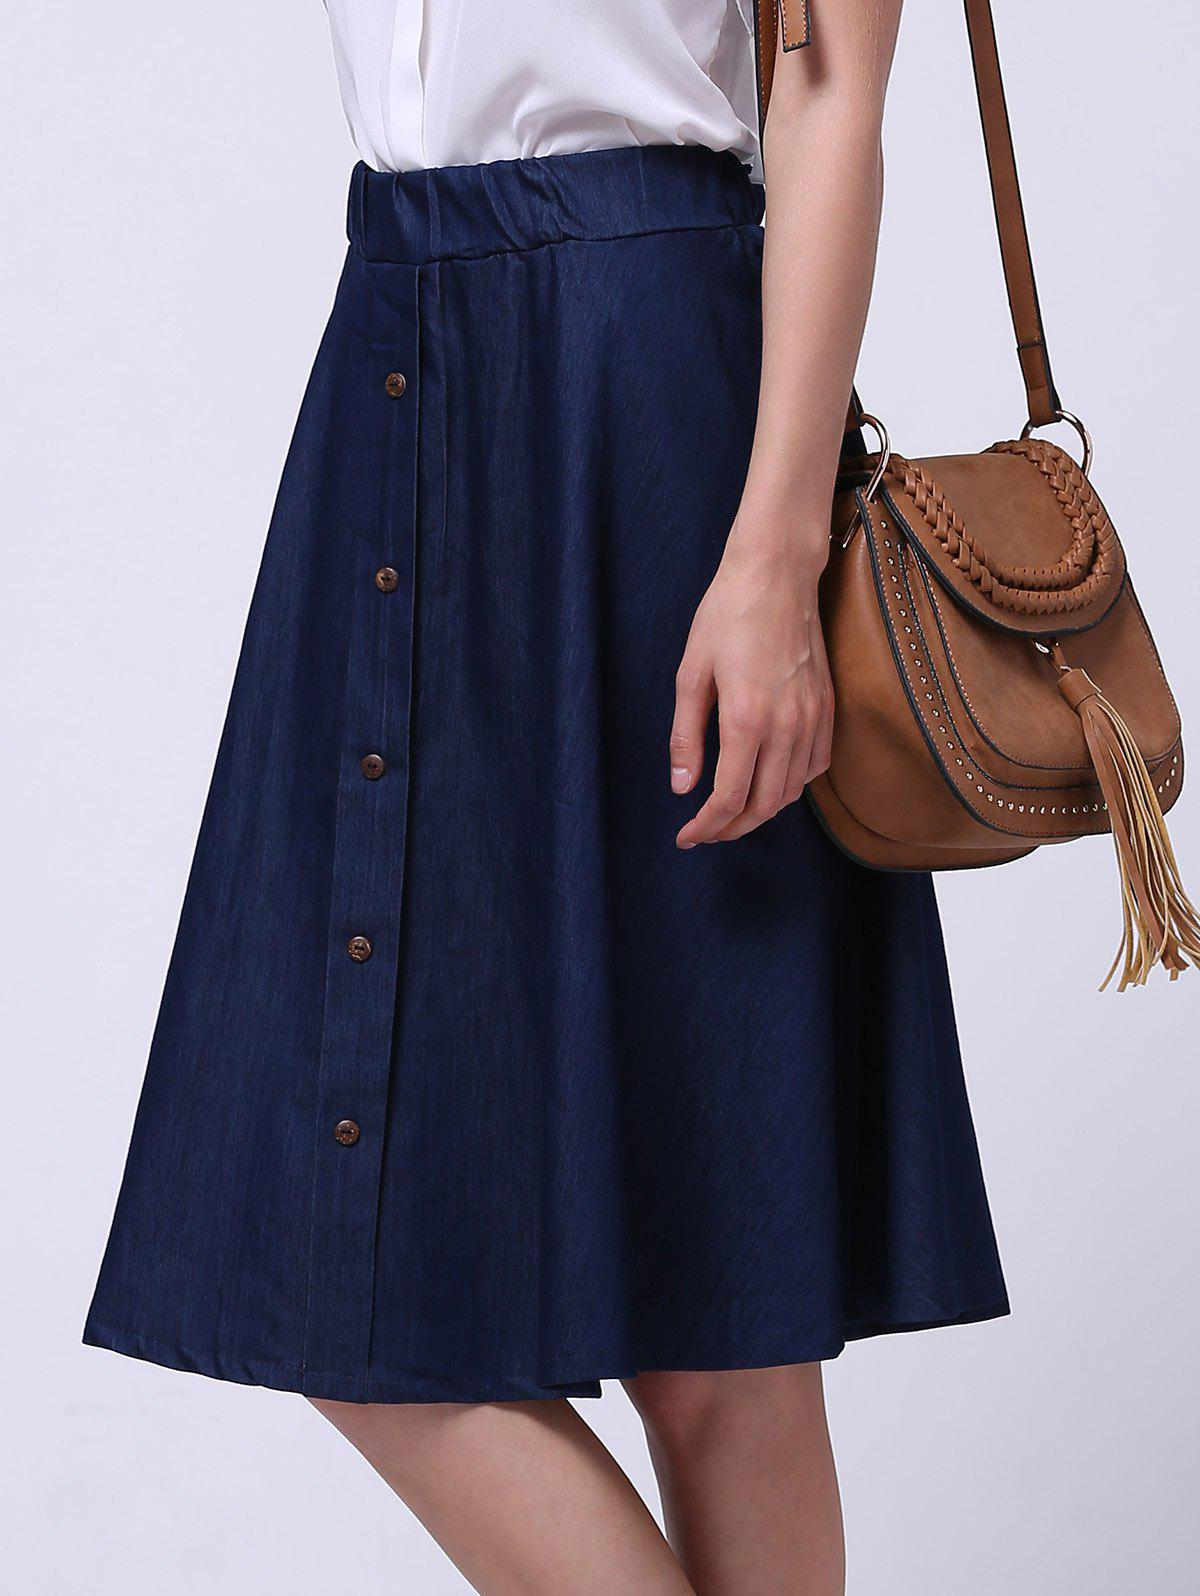 Single-Breasted Elastic Waist Women's Denim Skirt - DEEP BLUE 2XL